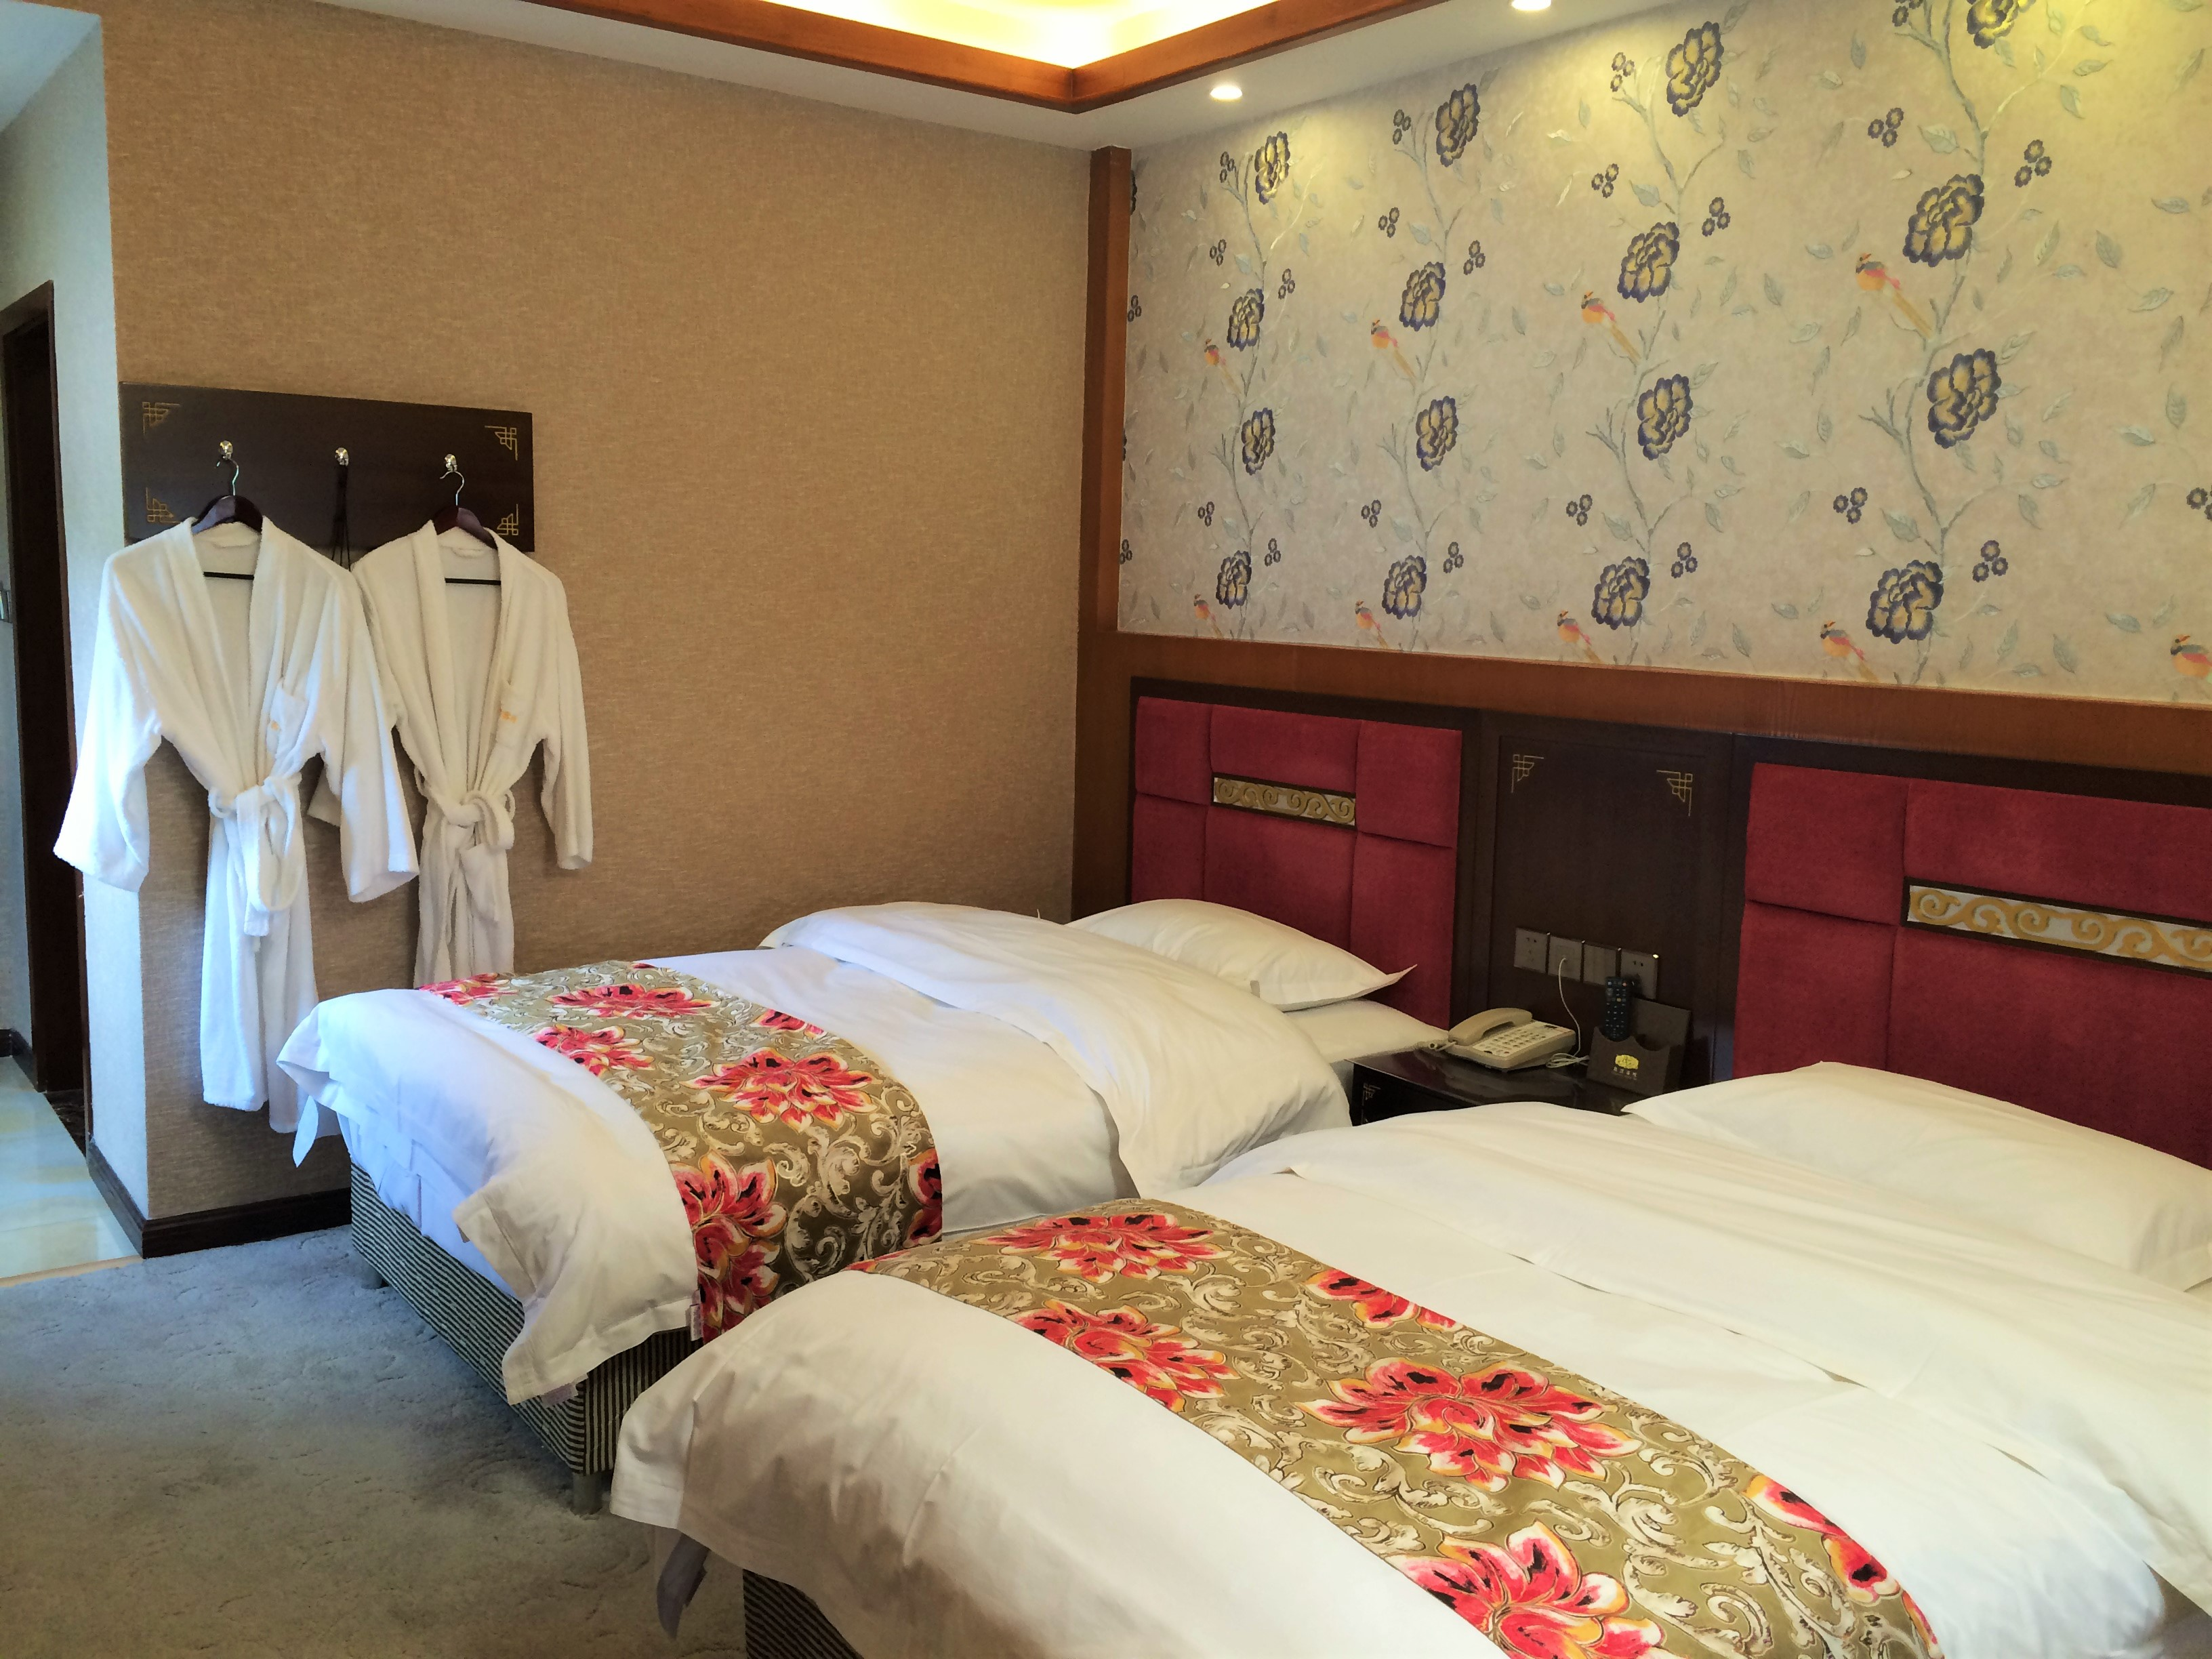 Xiangxiong guesthouse room